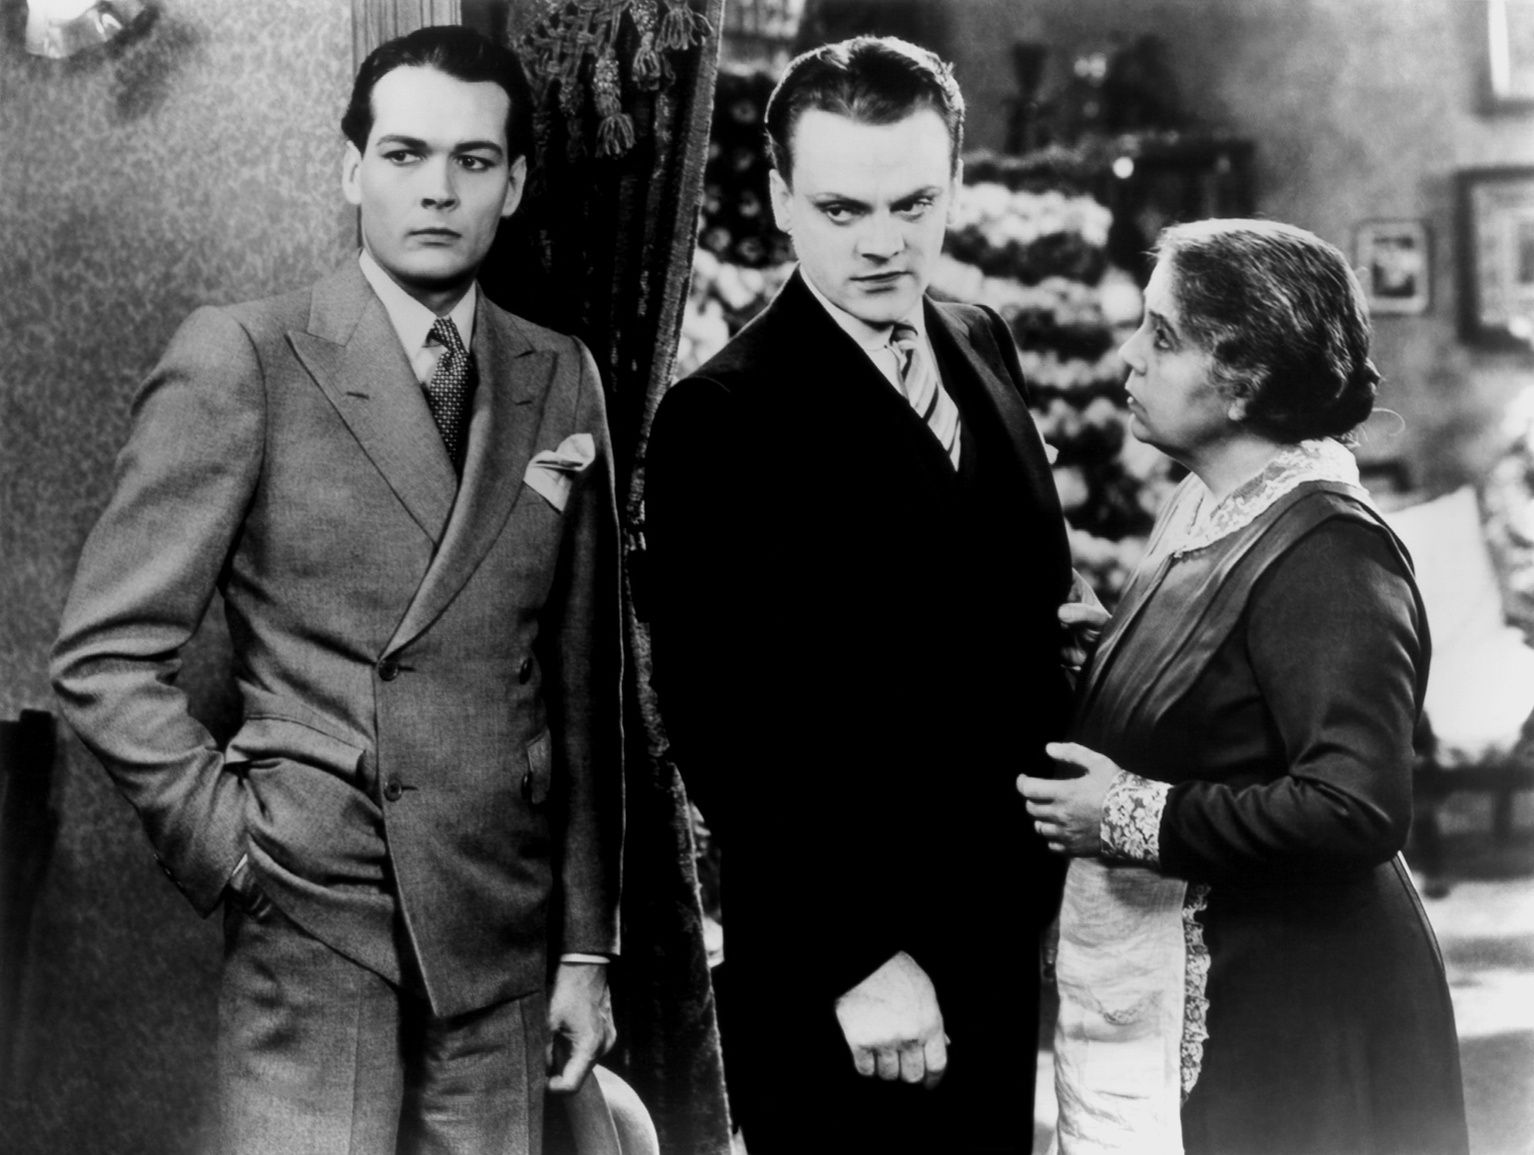 James Cagney in Public Enemy